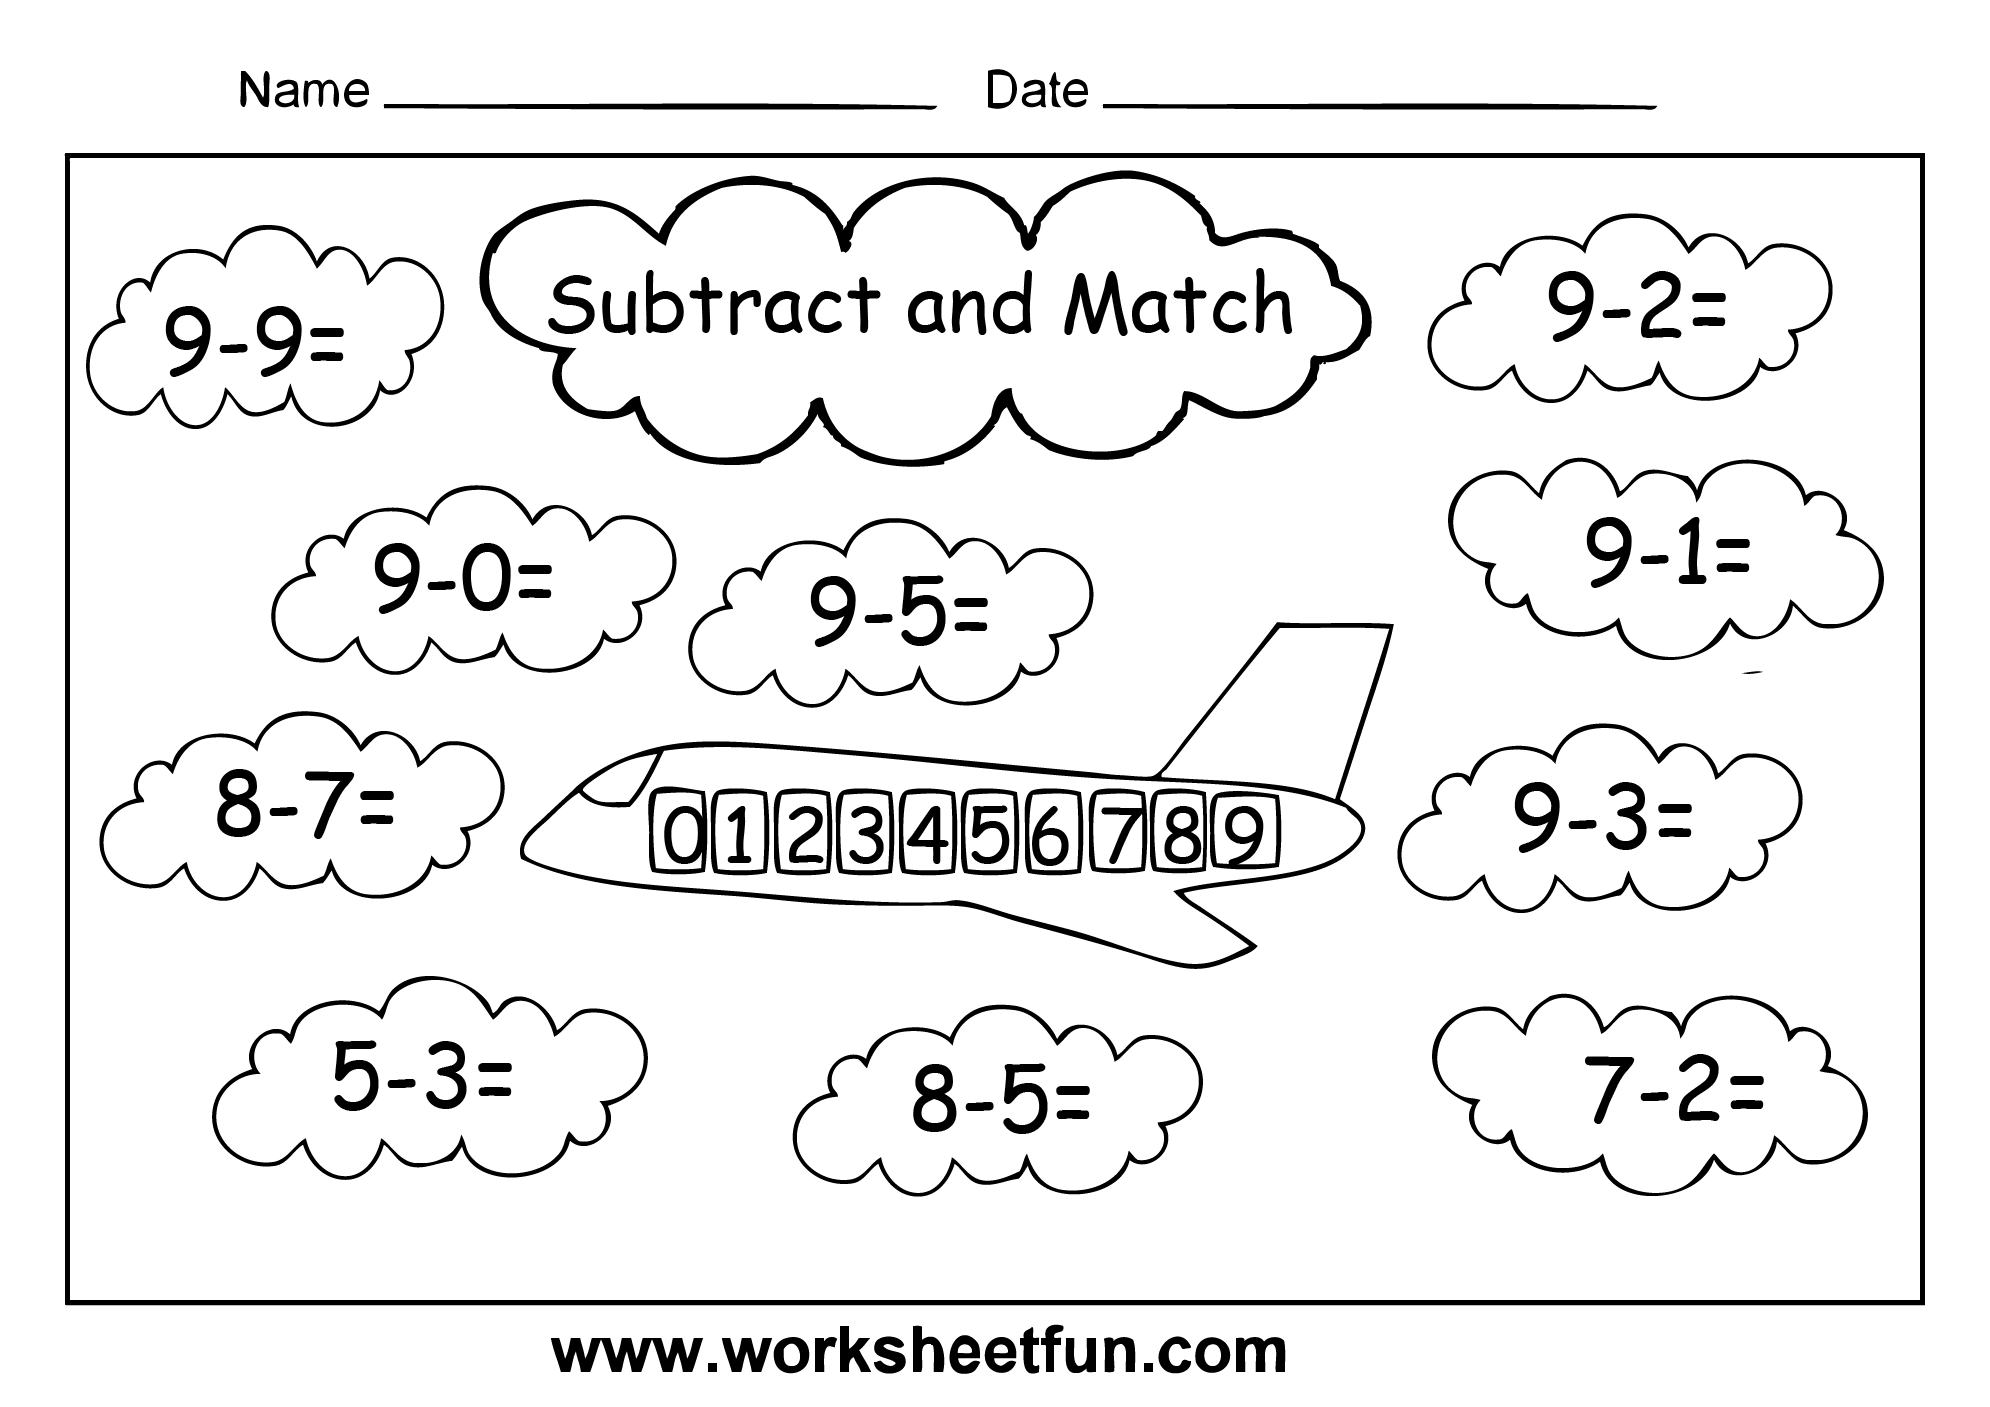 math worksheet : 1000 images about worksheets on pinterest  first grade math  : Subtraction Worksheets 1st Grade